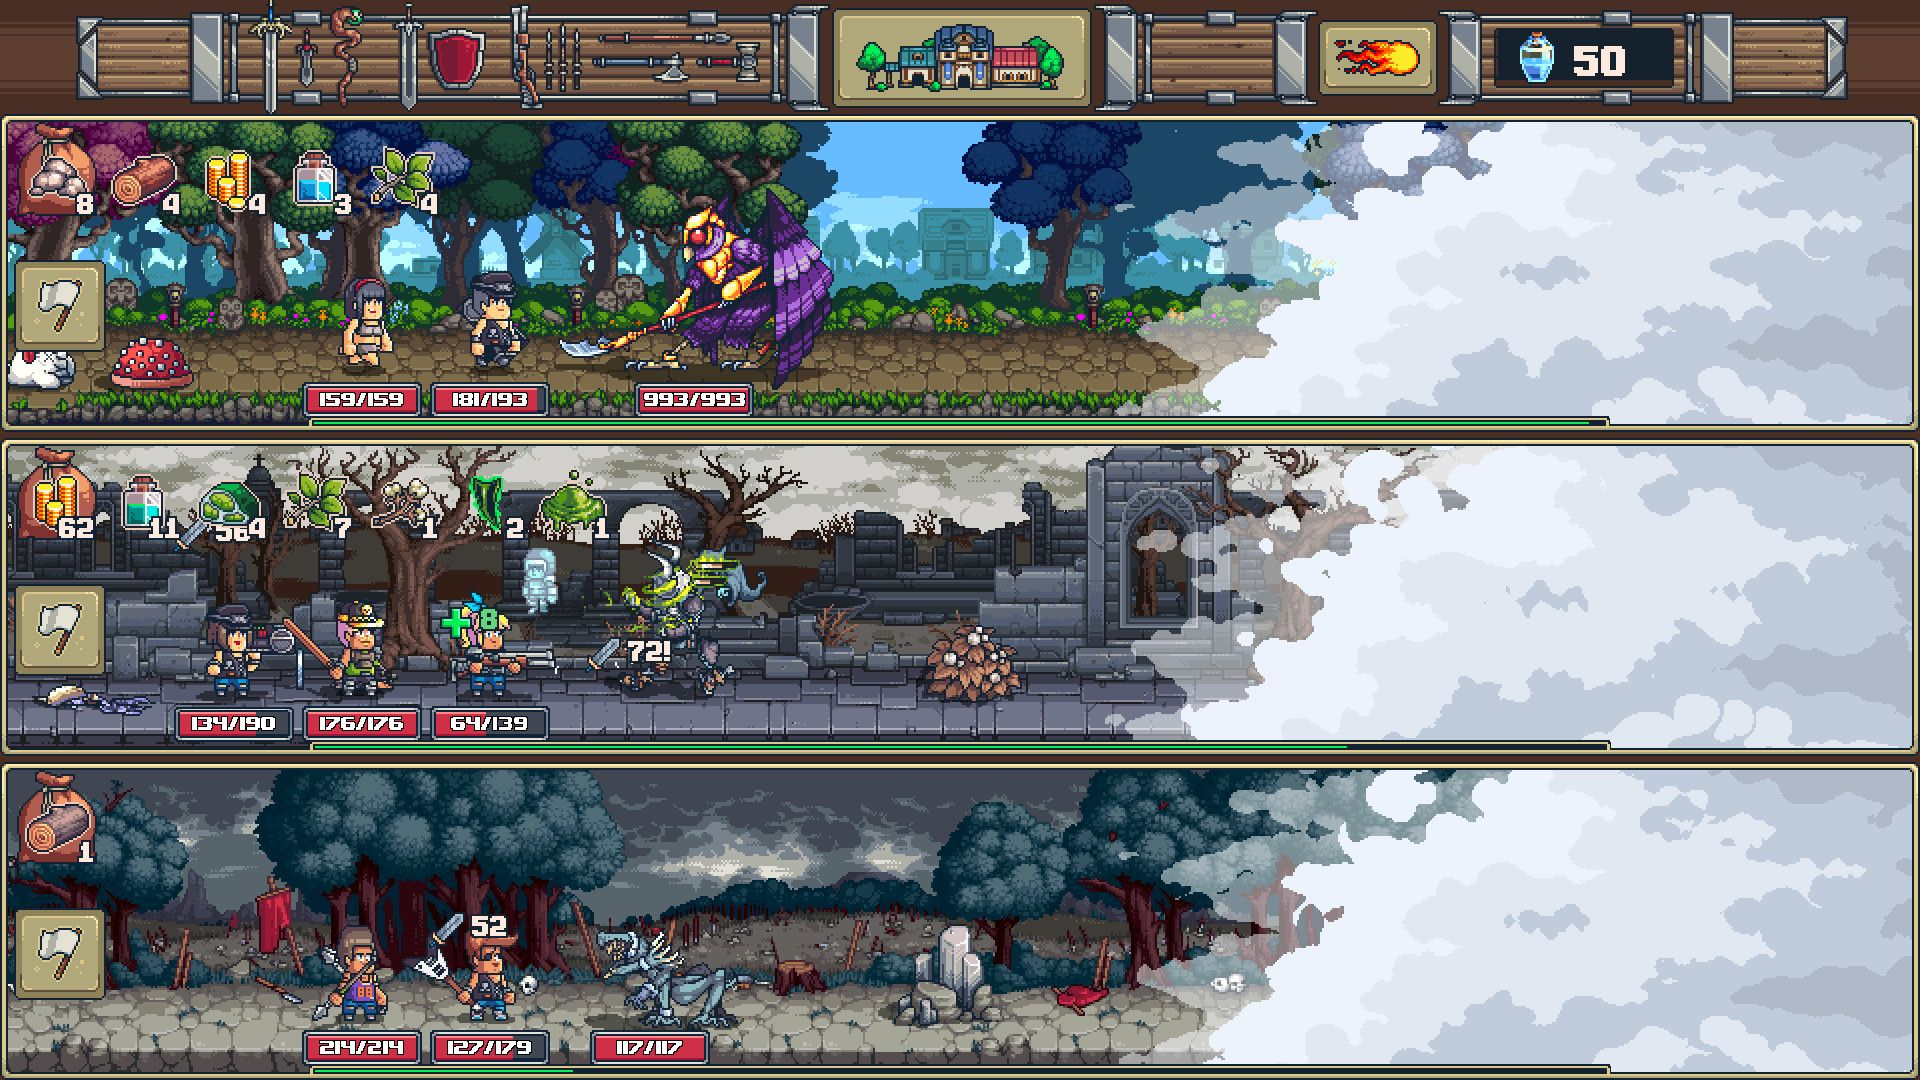 swag and sorcery pax south 2019 hands on demo tinybuild